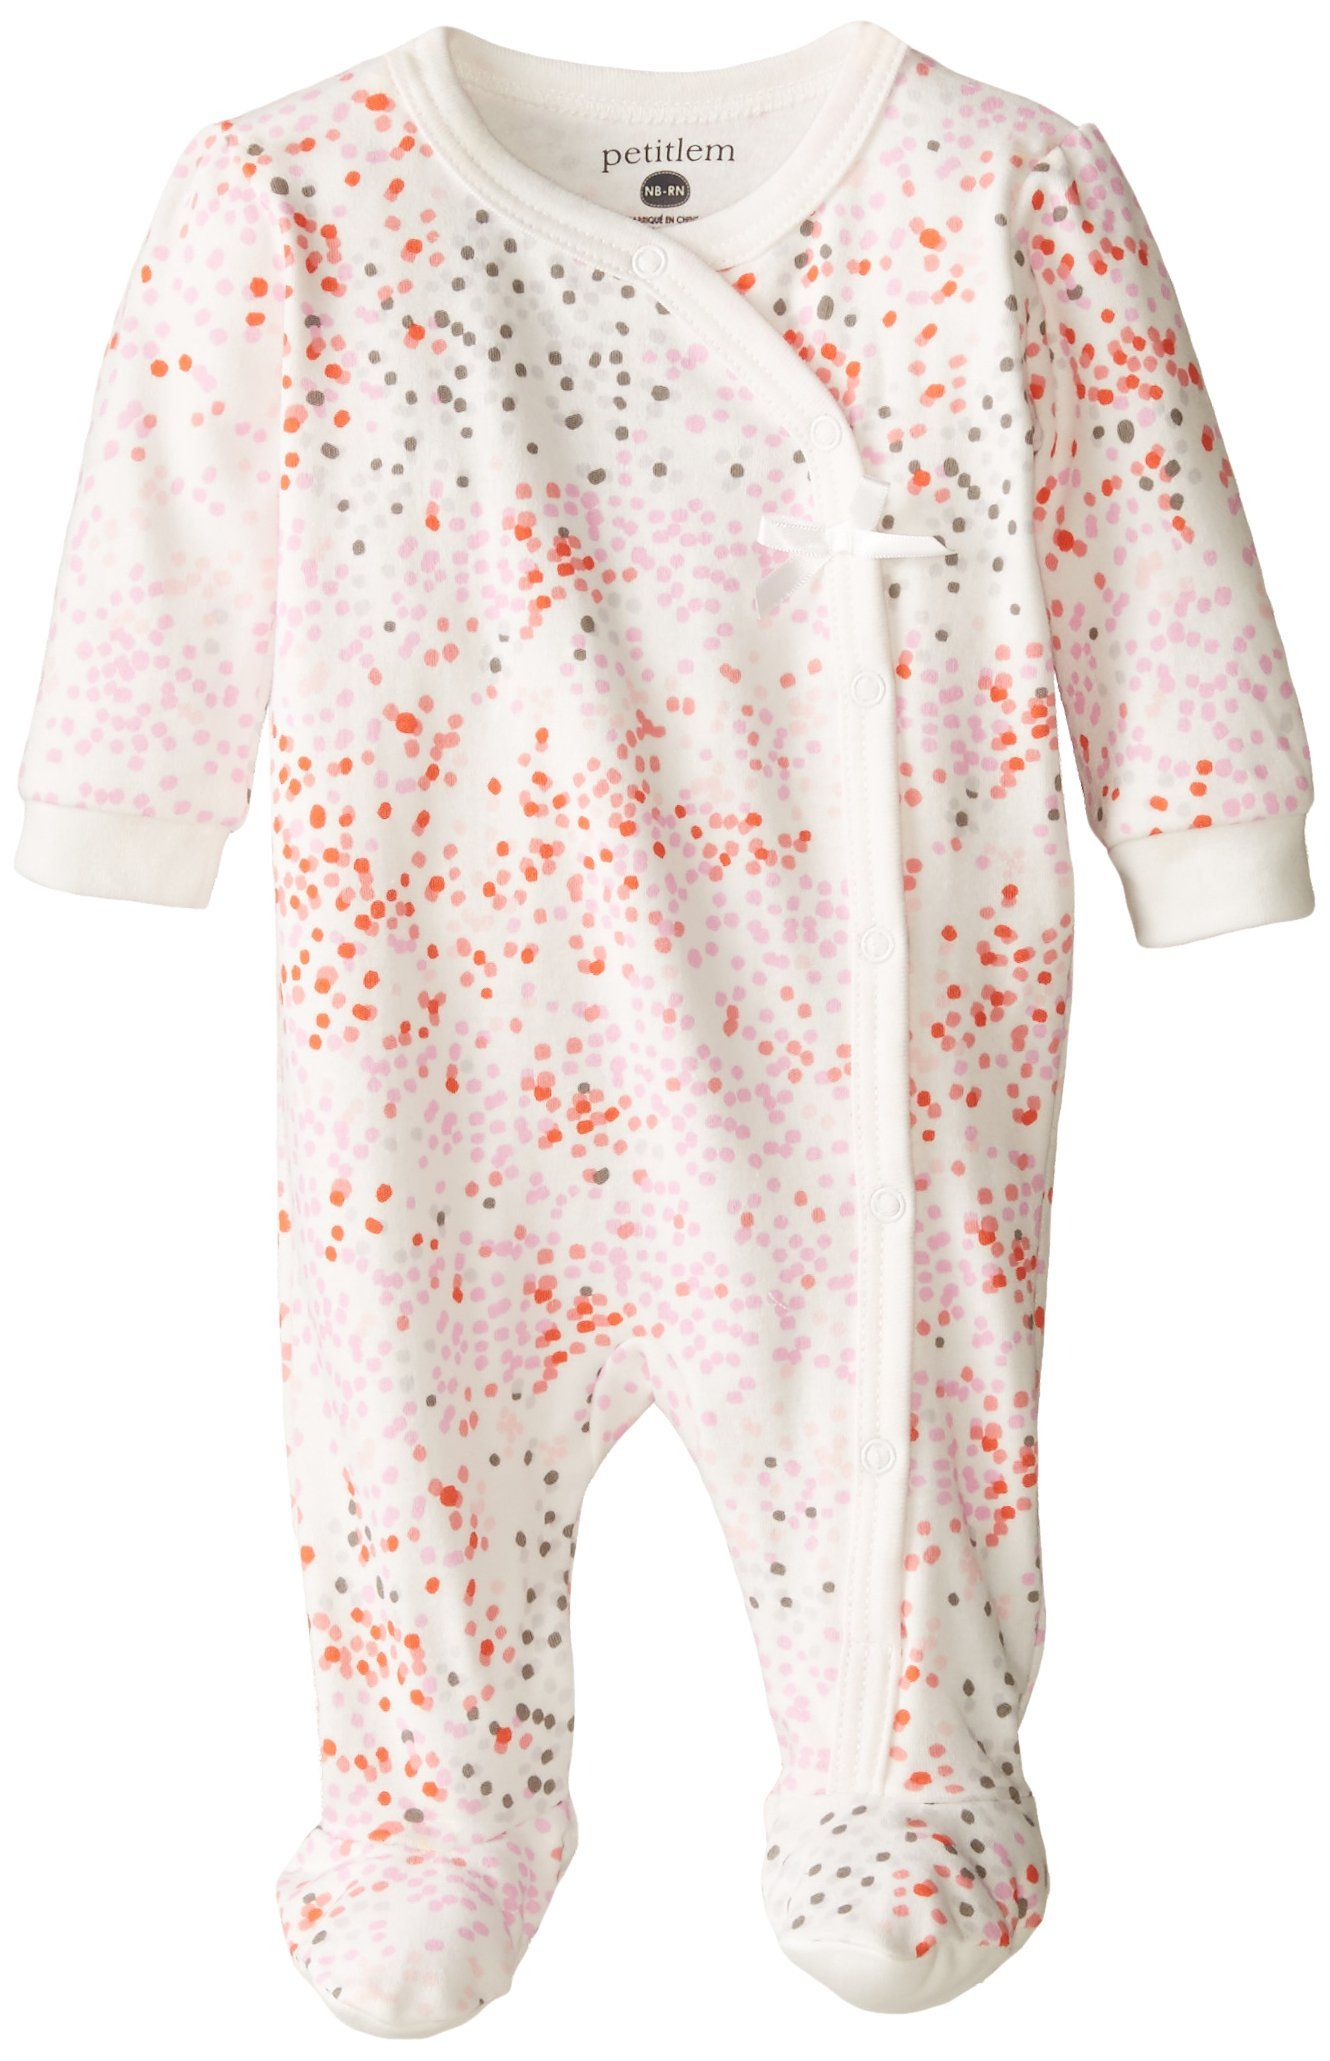 ff1843d79 Petit Lem Baby-Girls Newborn Footed Pajama Sleeper Multi Dots, White/Pink  Dots, 3 Months